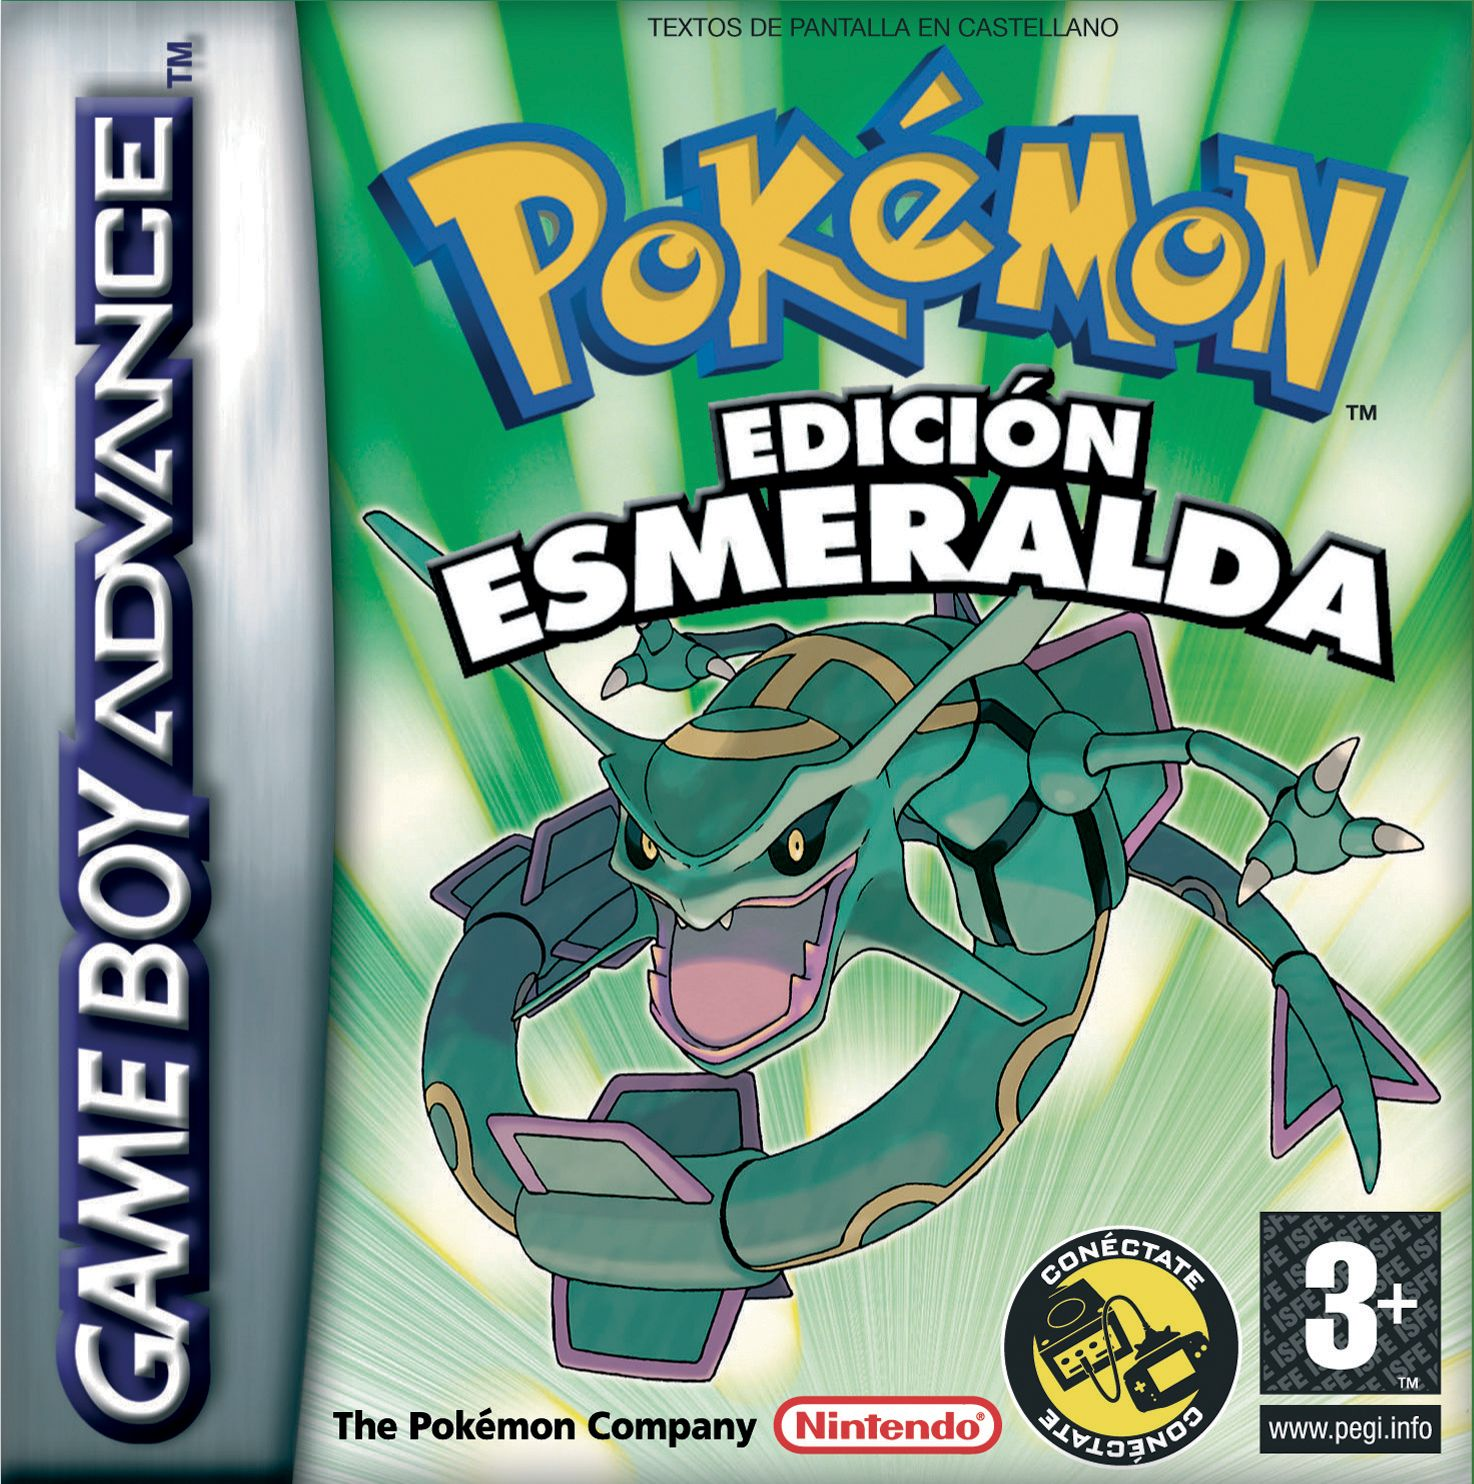 Pokémon Edición Esmeralda 2004 Pokemon Emerald Pokemon Pokemon Games